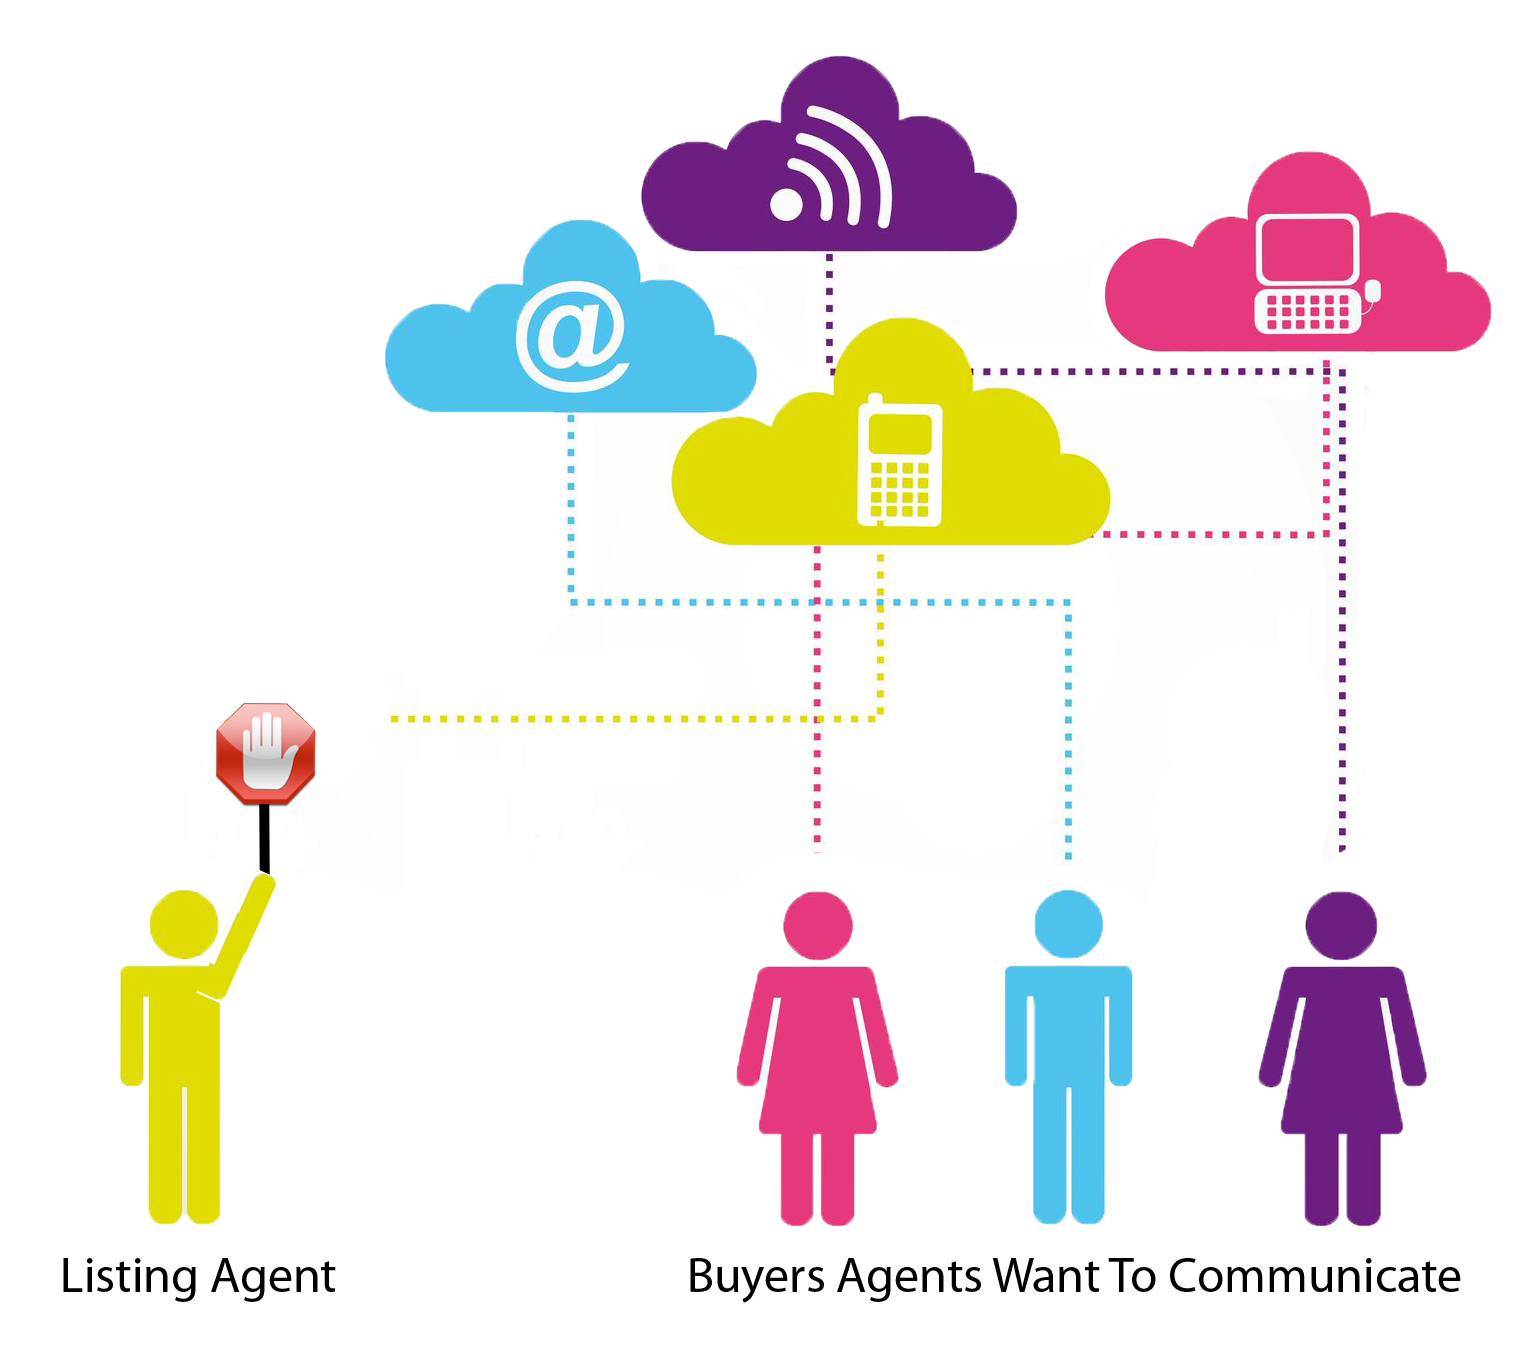 Listing Agent Refuses To Communicate